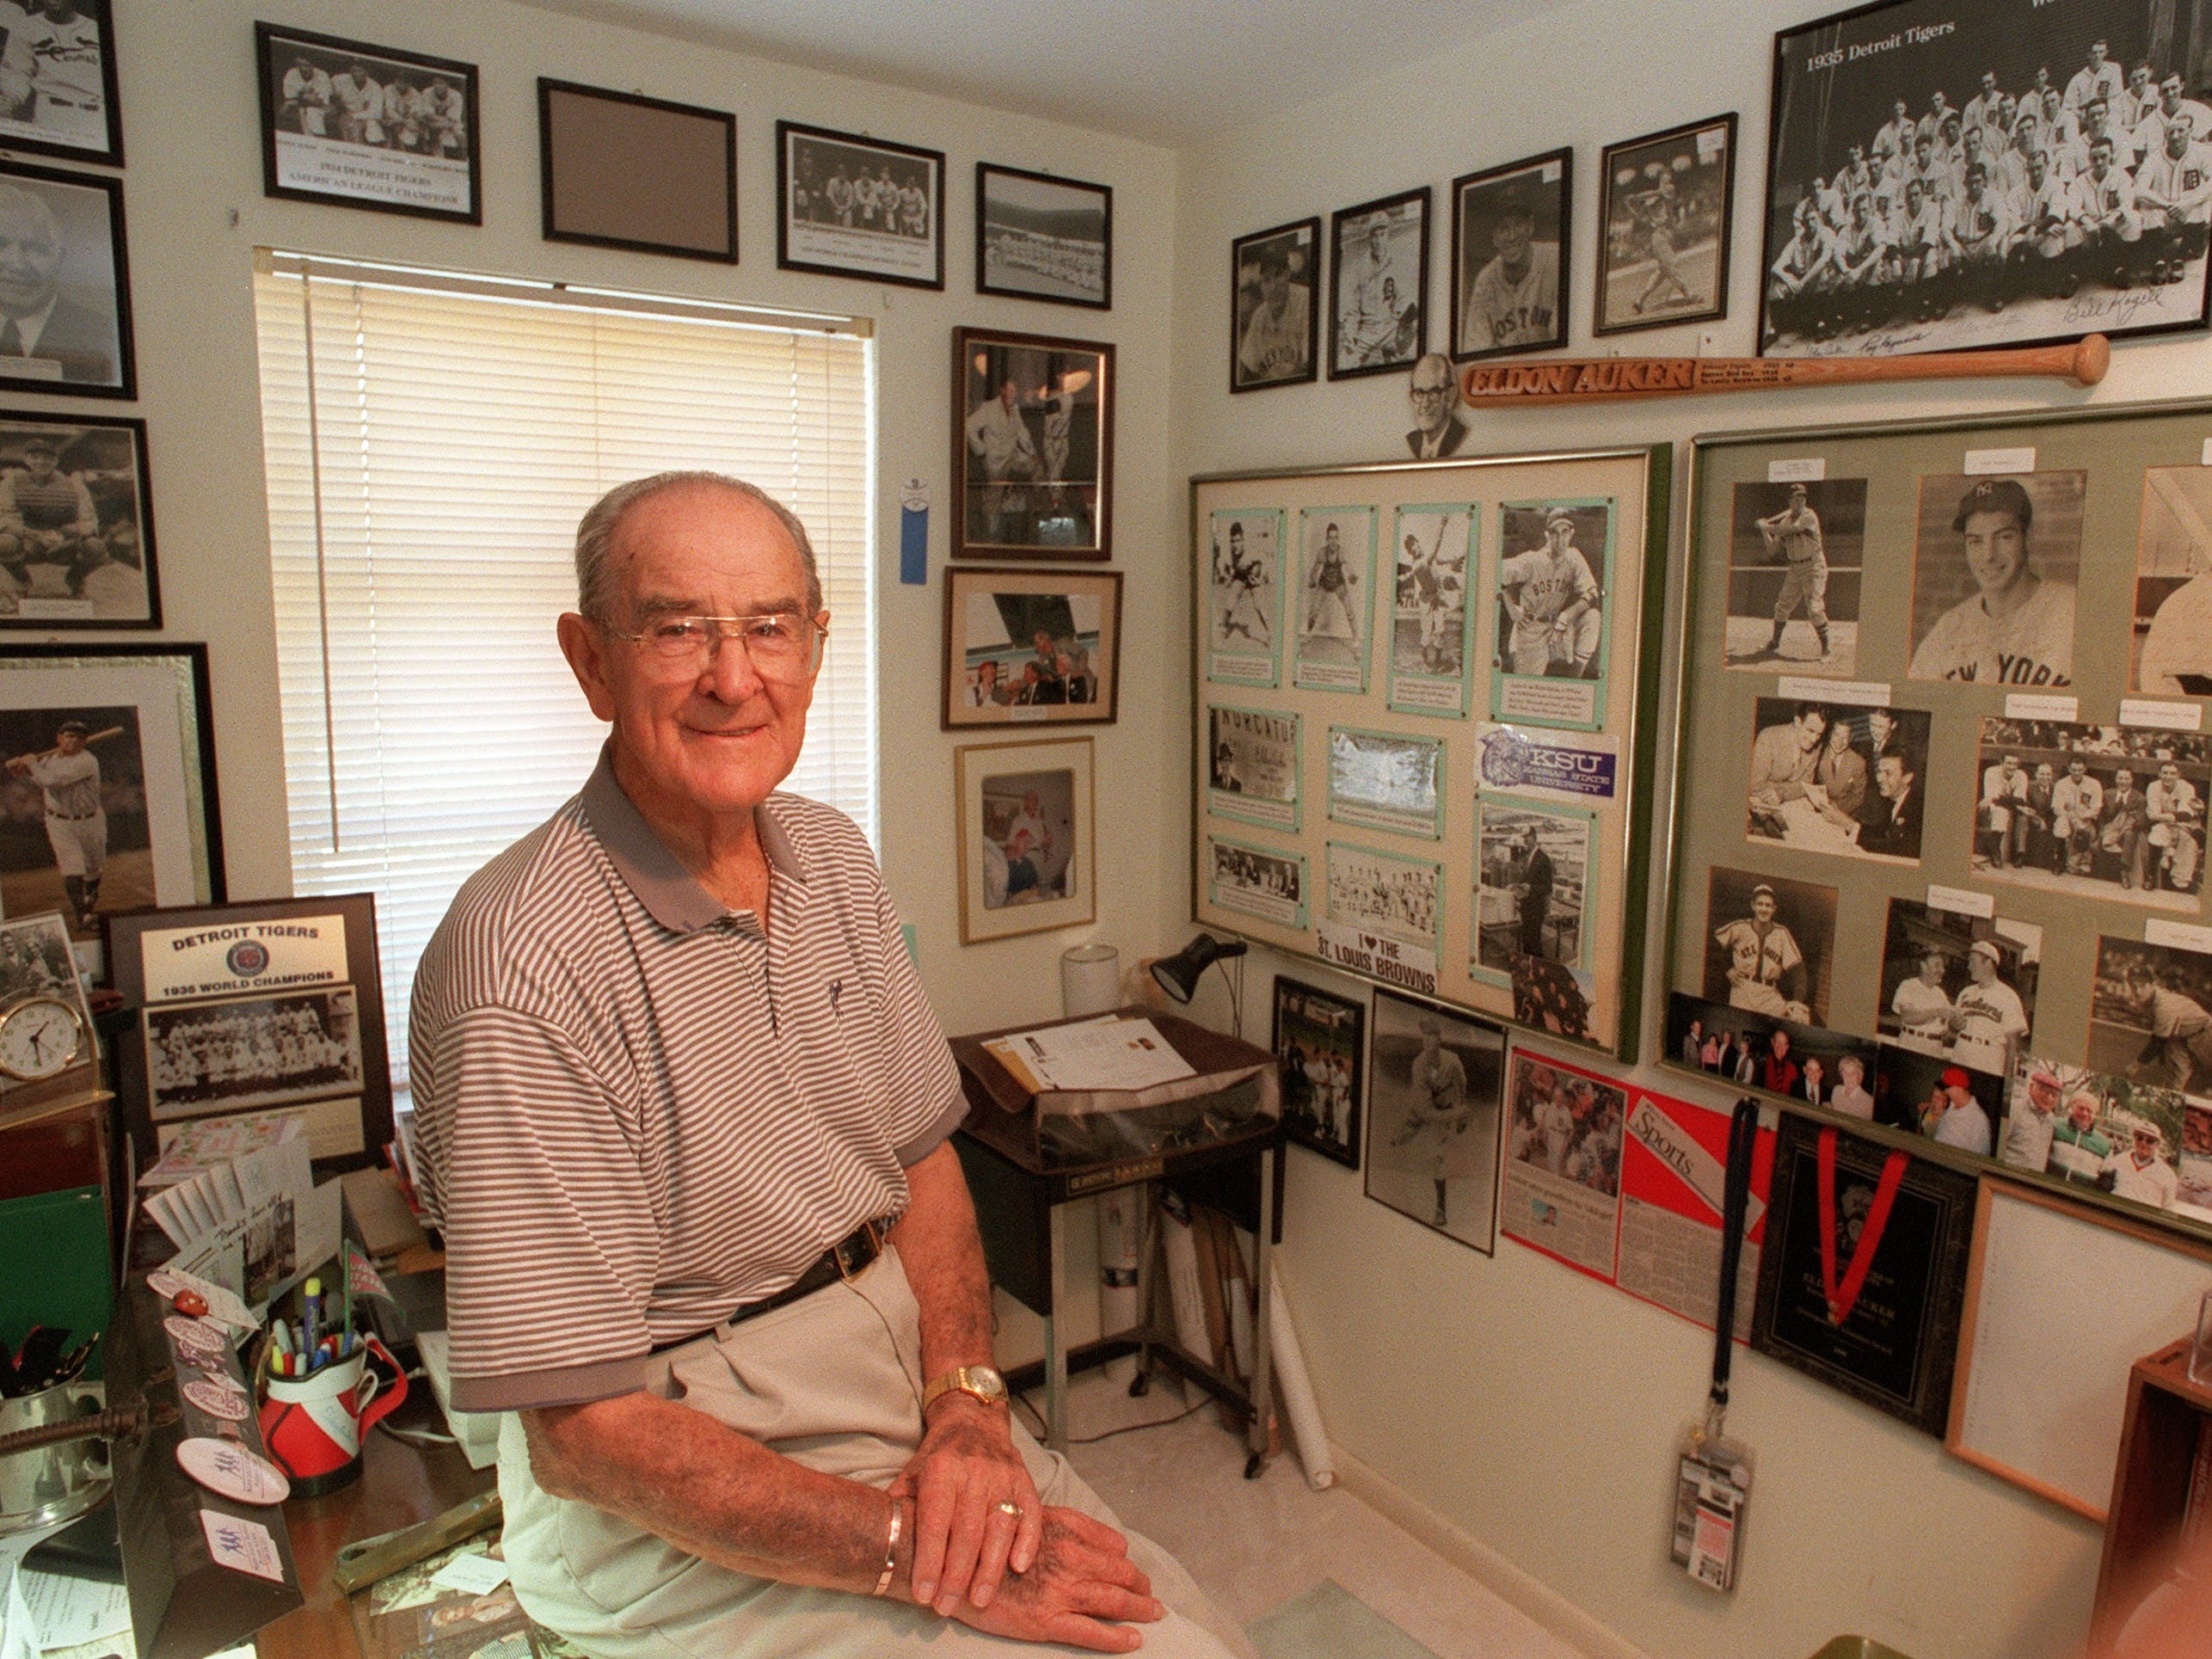 July 5, 2002 - Elden Auker, a Vero Beach resident who pitched in Major League Baseball from 1933-42, sits at home surrounded by pictures of family and baseball. Auker, who moved to Vero Beach in 1974, was the last living ex-player to have pitched to Babe Ruth. Auker passed away in 2006.